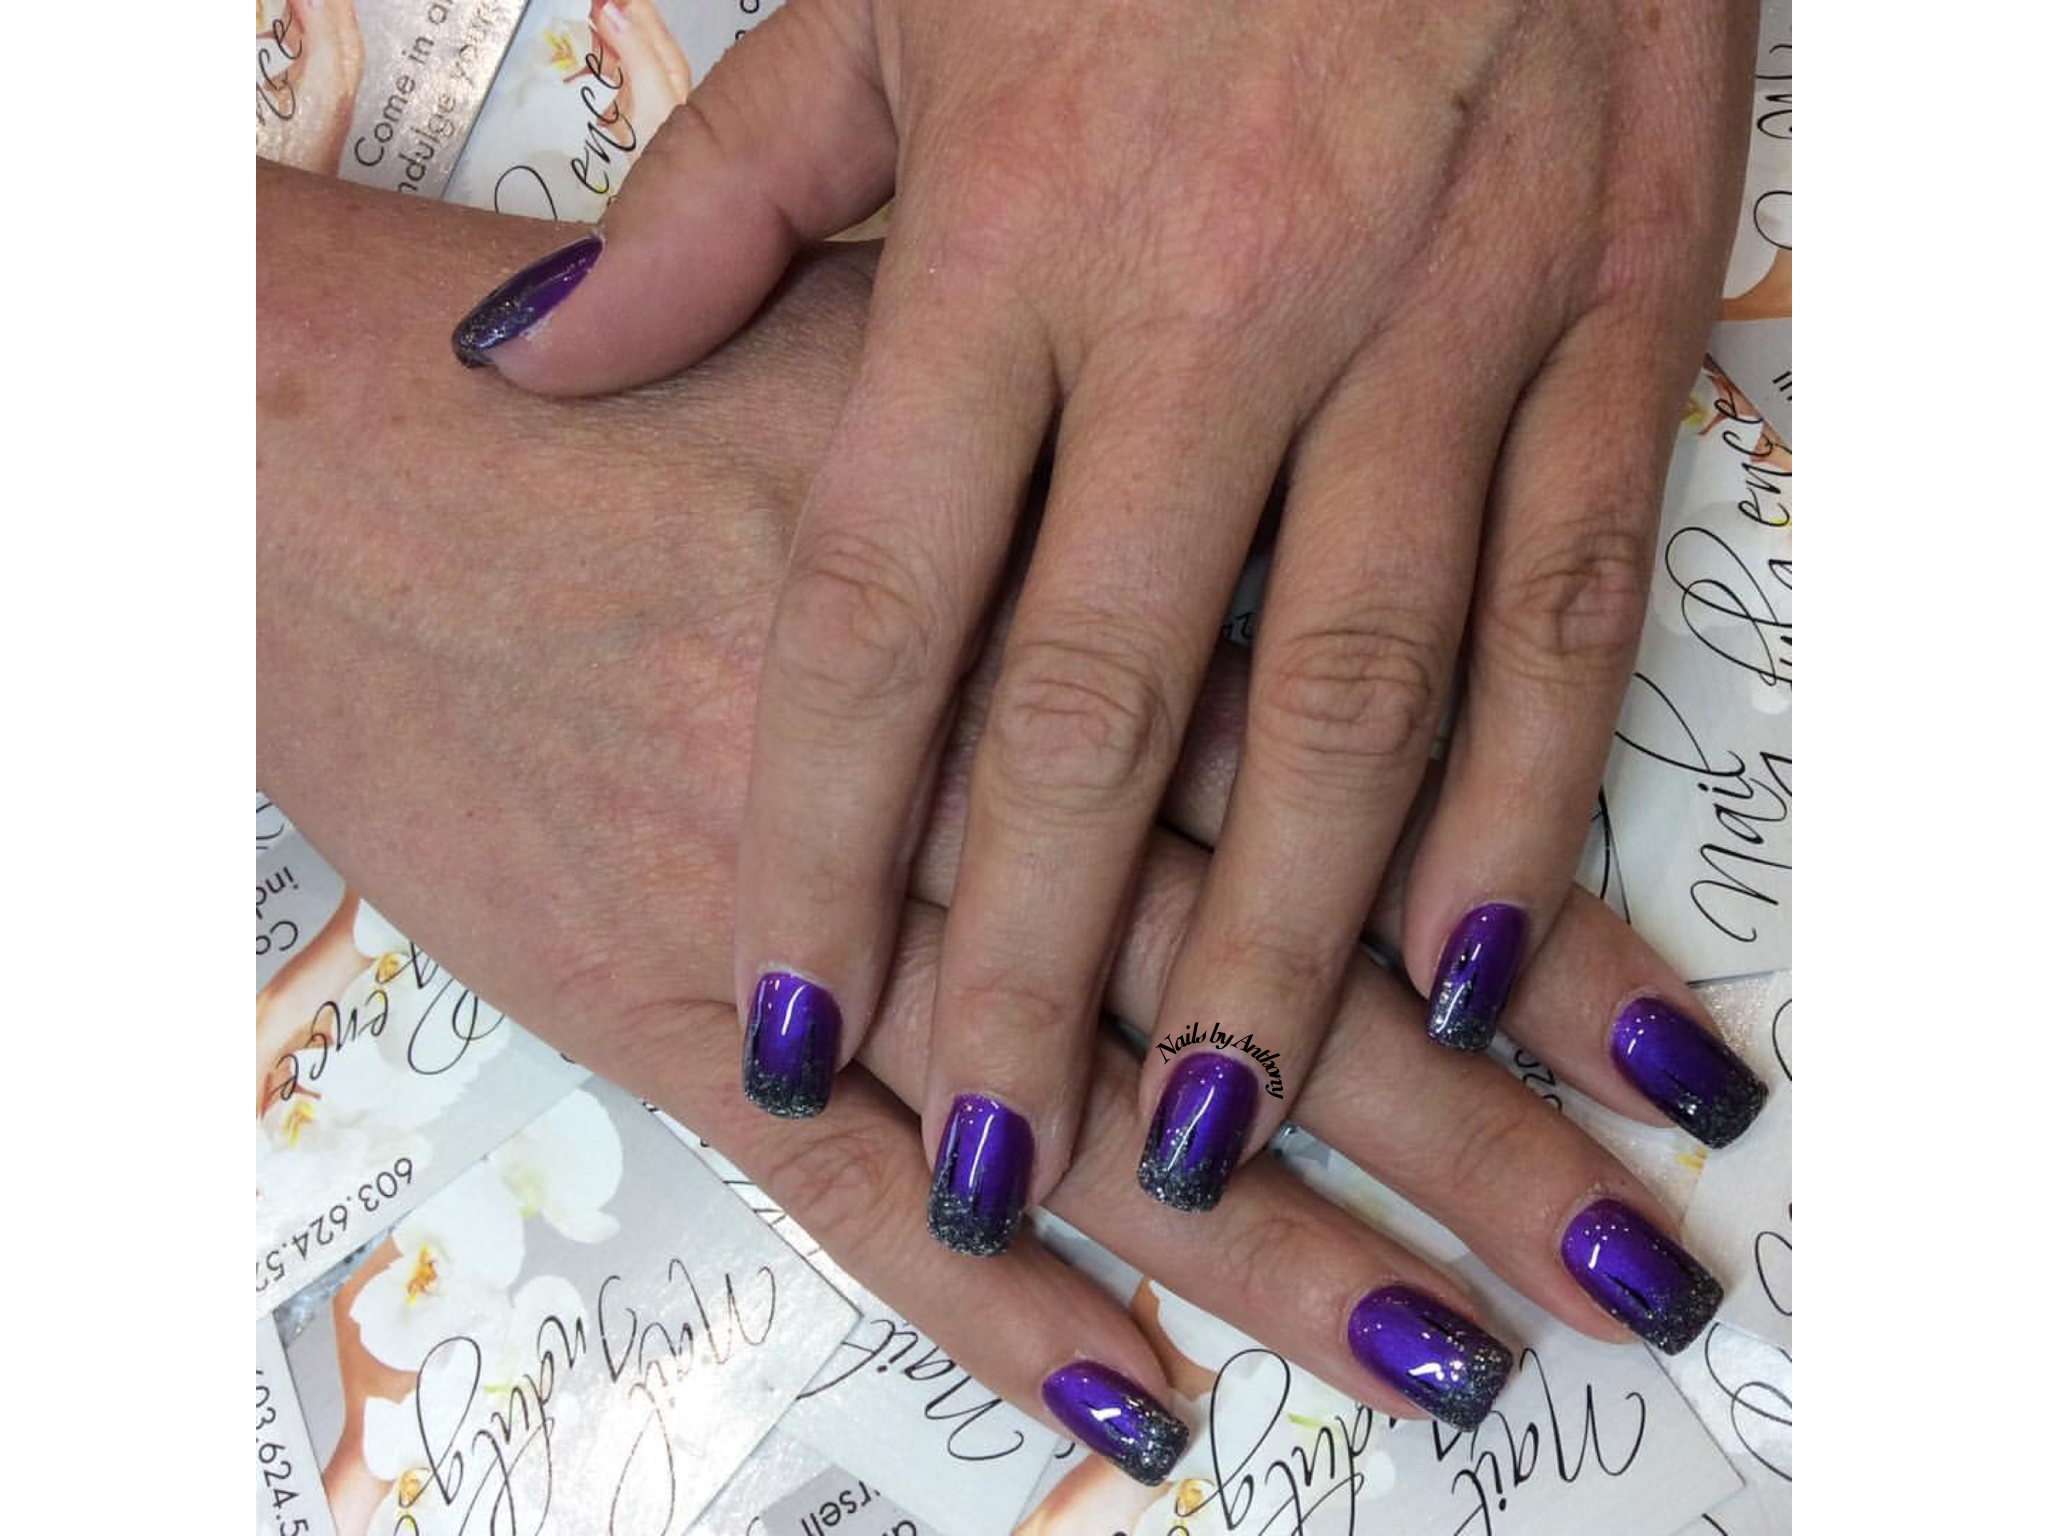 A New Look. Nails by Anthony | Nails By Anthony | Pinterest